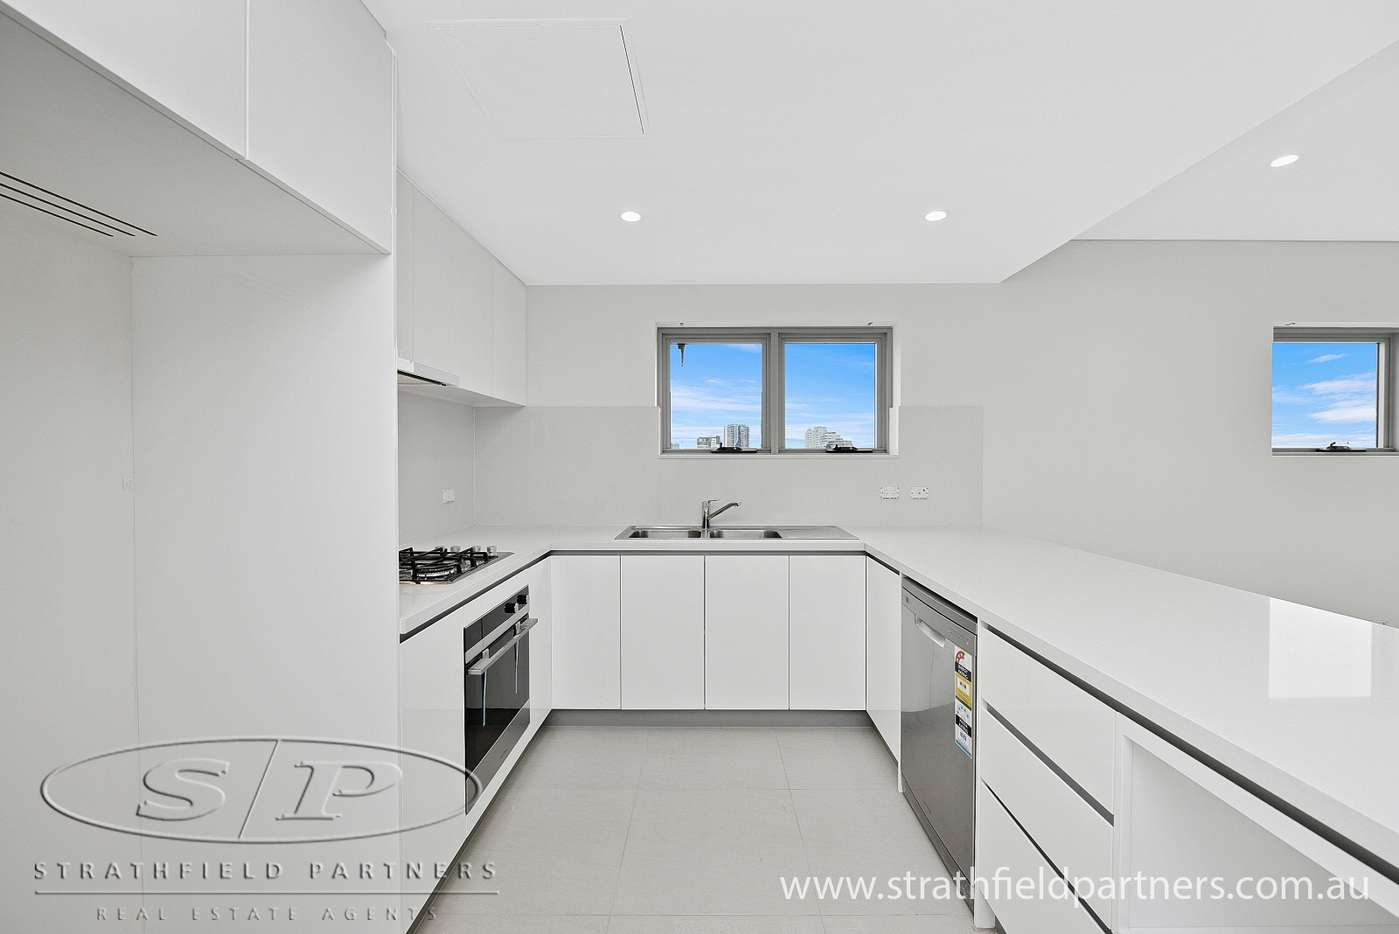 Main view of Homely apartment listing, 1104/29 Morwick Street, Strathfield, NSW 2135